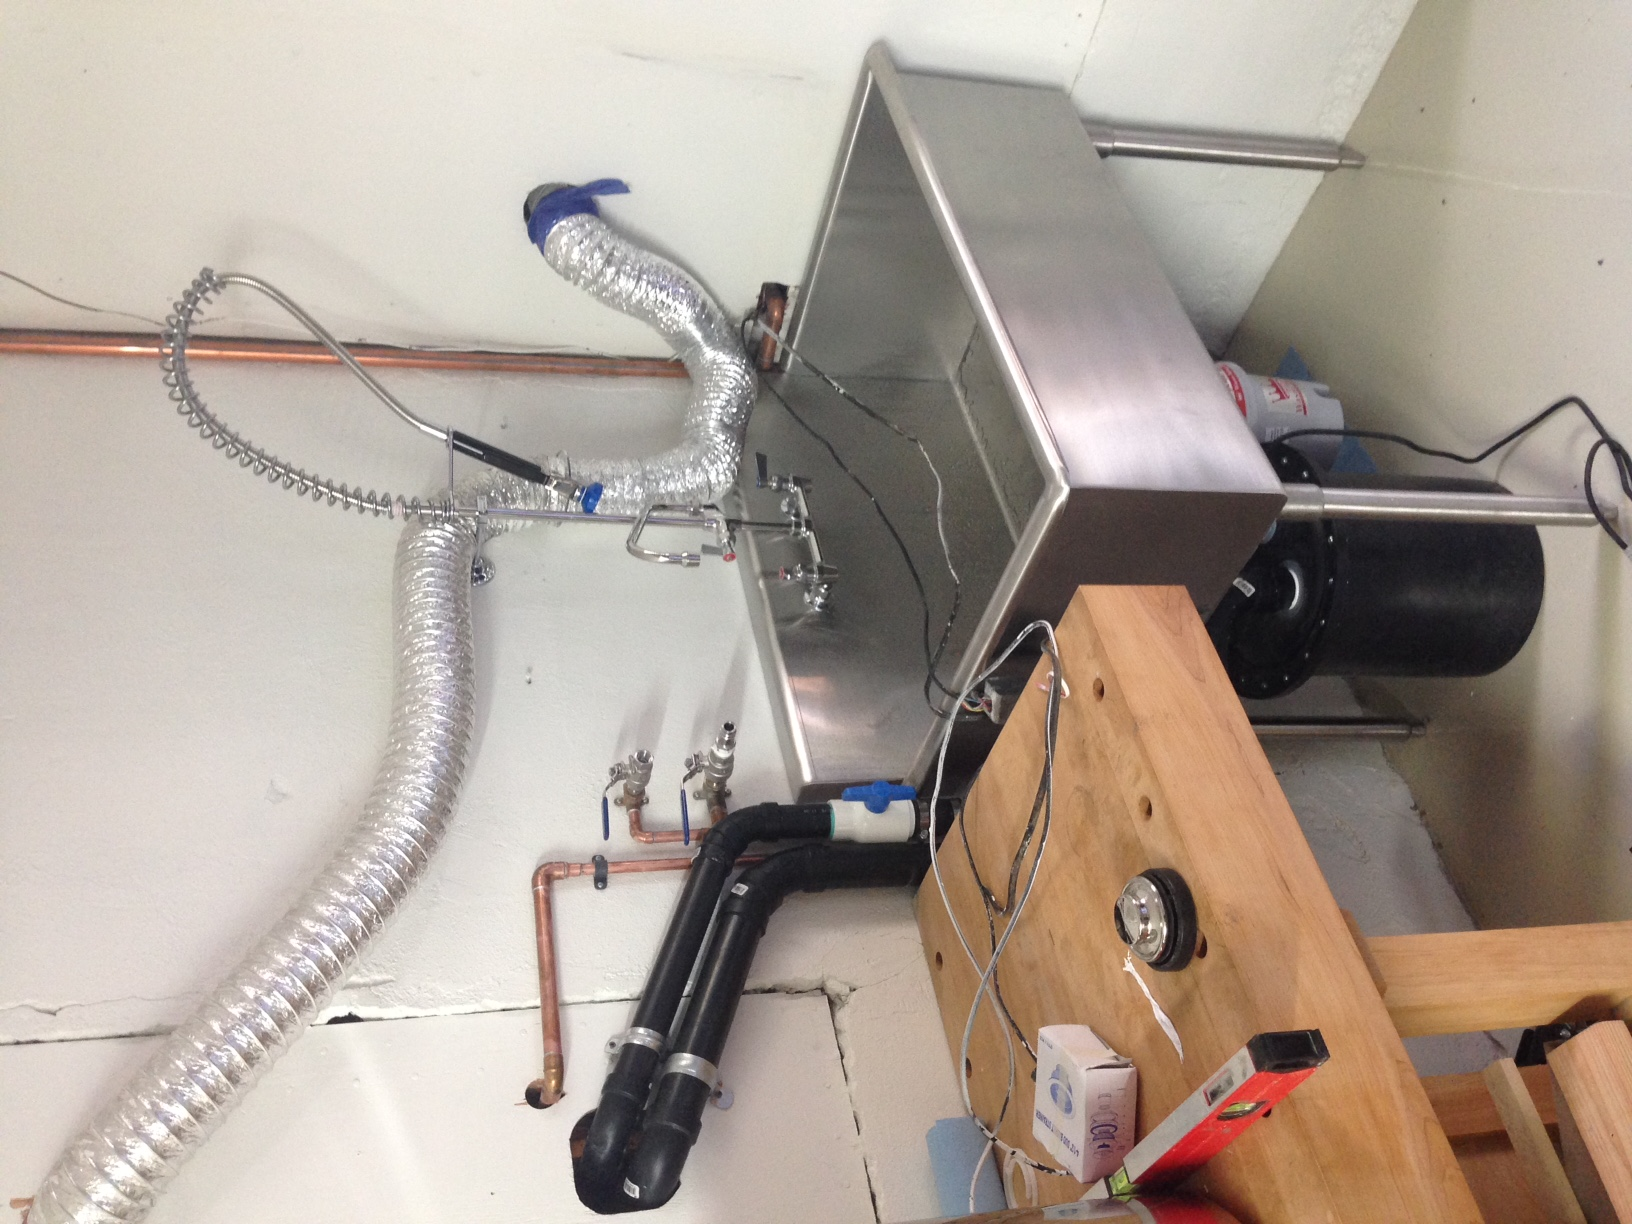 Sewage Ejection pump, drains, vent, water supply lines, garbage disposal and faucet install.